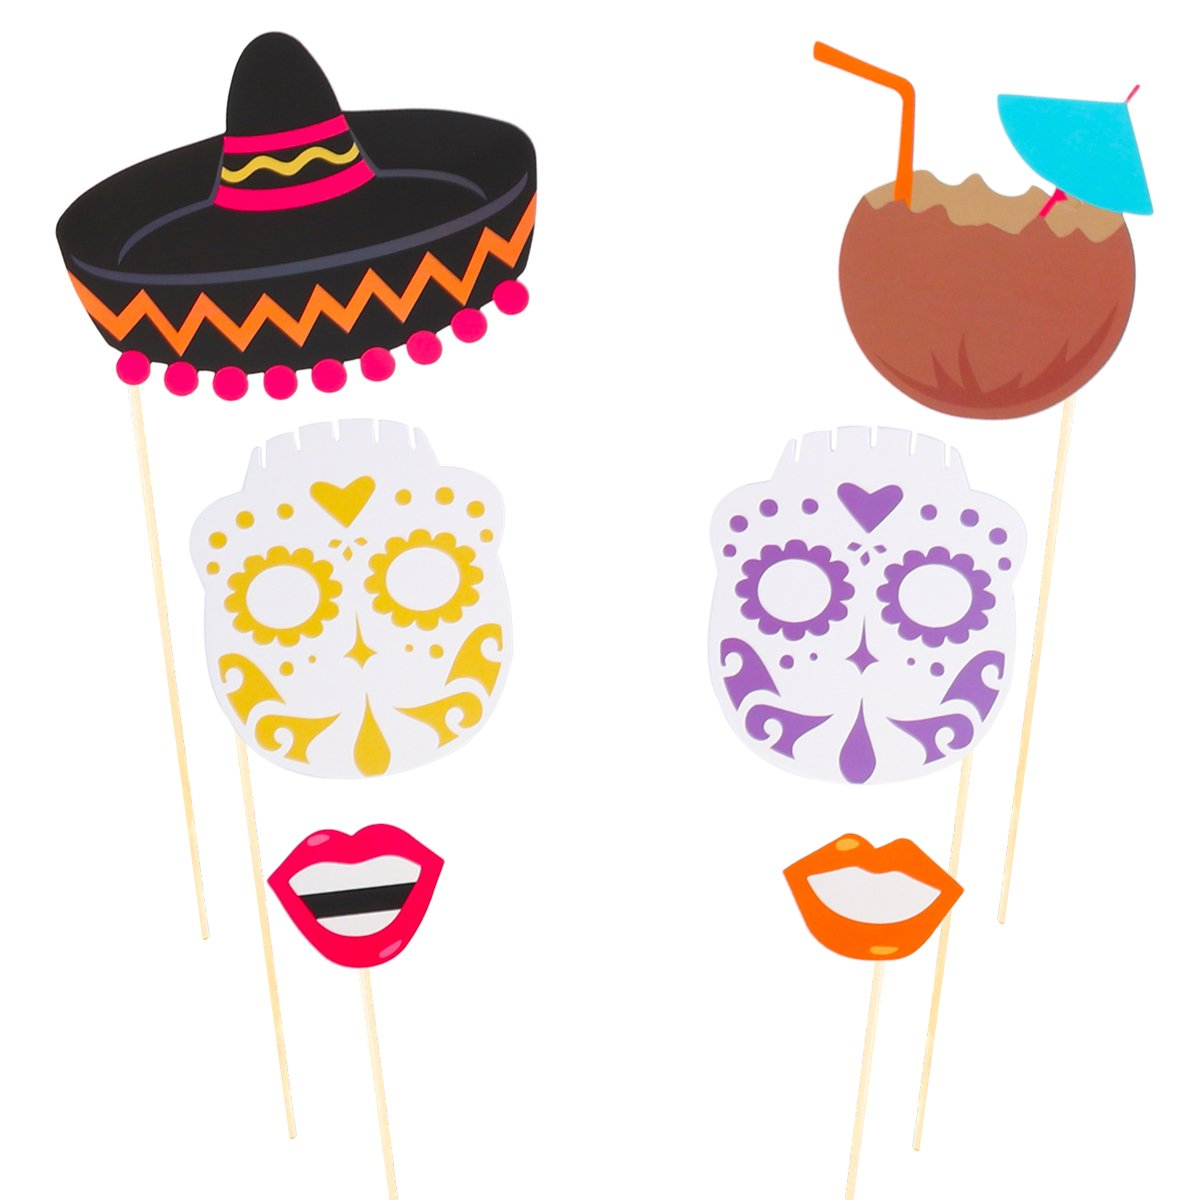 LUOEM Mexican Fiesta Photo Booth Props Cinco De Mayo Mexican Party Favors Supplies Selfie Props for The Dead Party Birthday Bachelorette Fiesta Themed Party Decorations 21 Pack